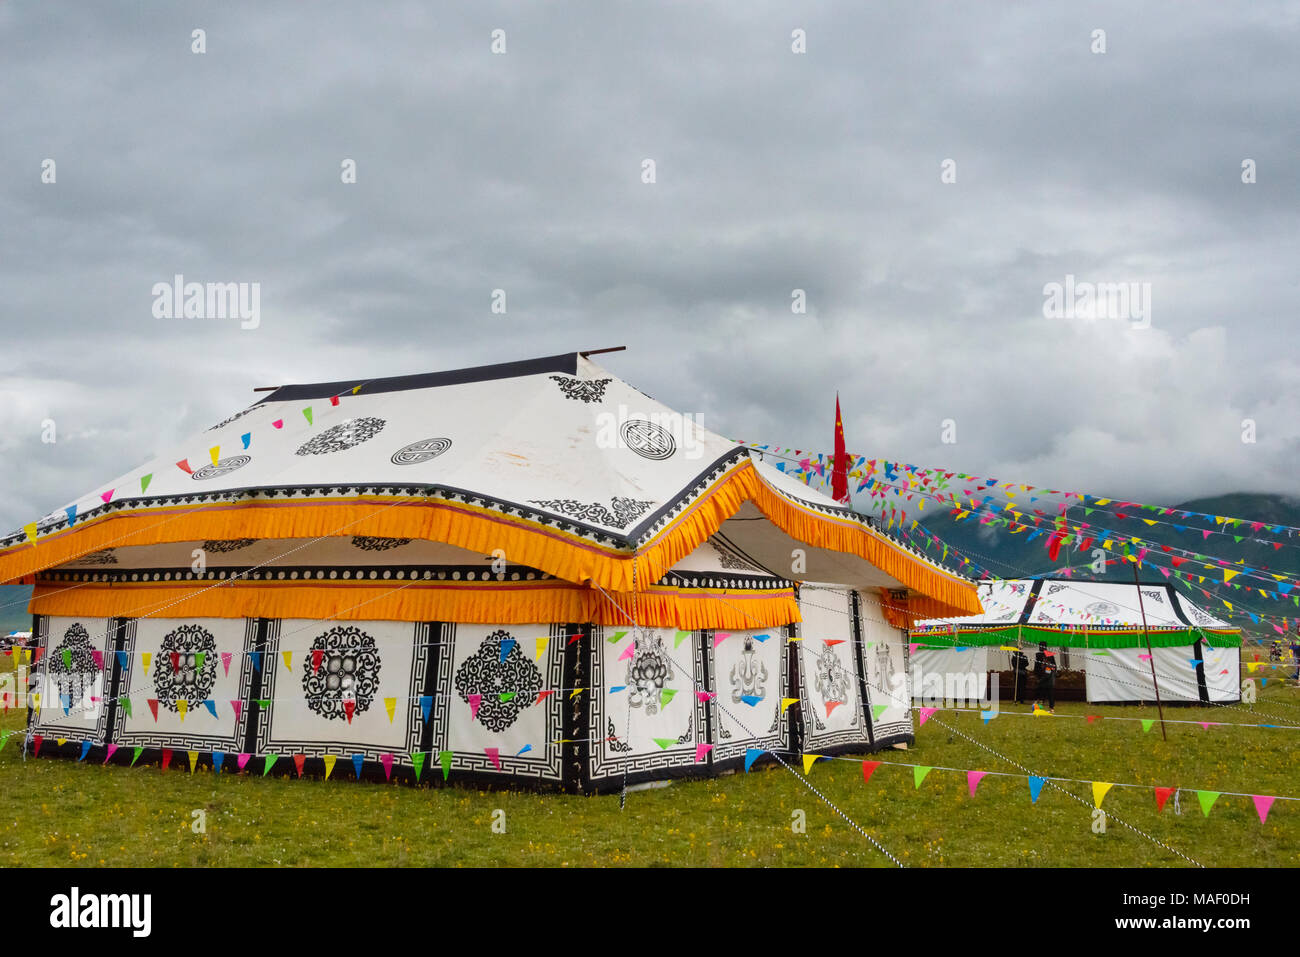 Tibetan yurt on the meadow at Horse Race Festival, Litang, western Sichuan, China - Stock Image